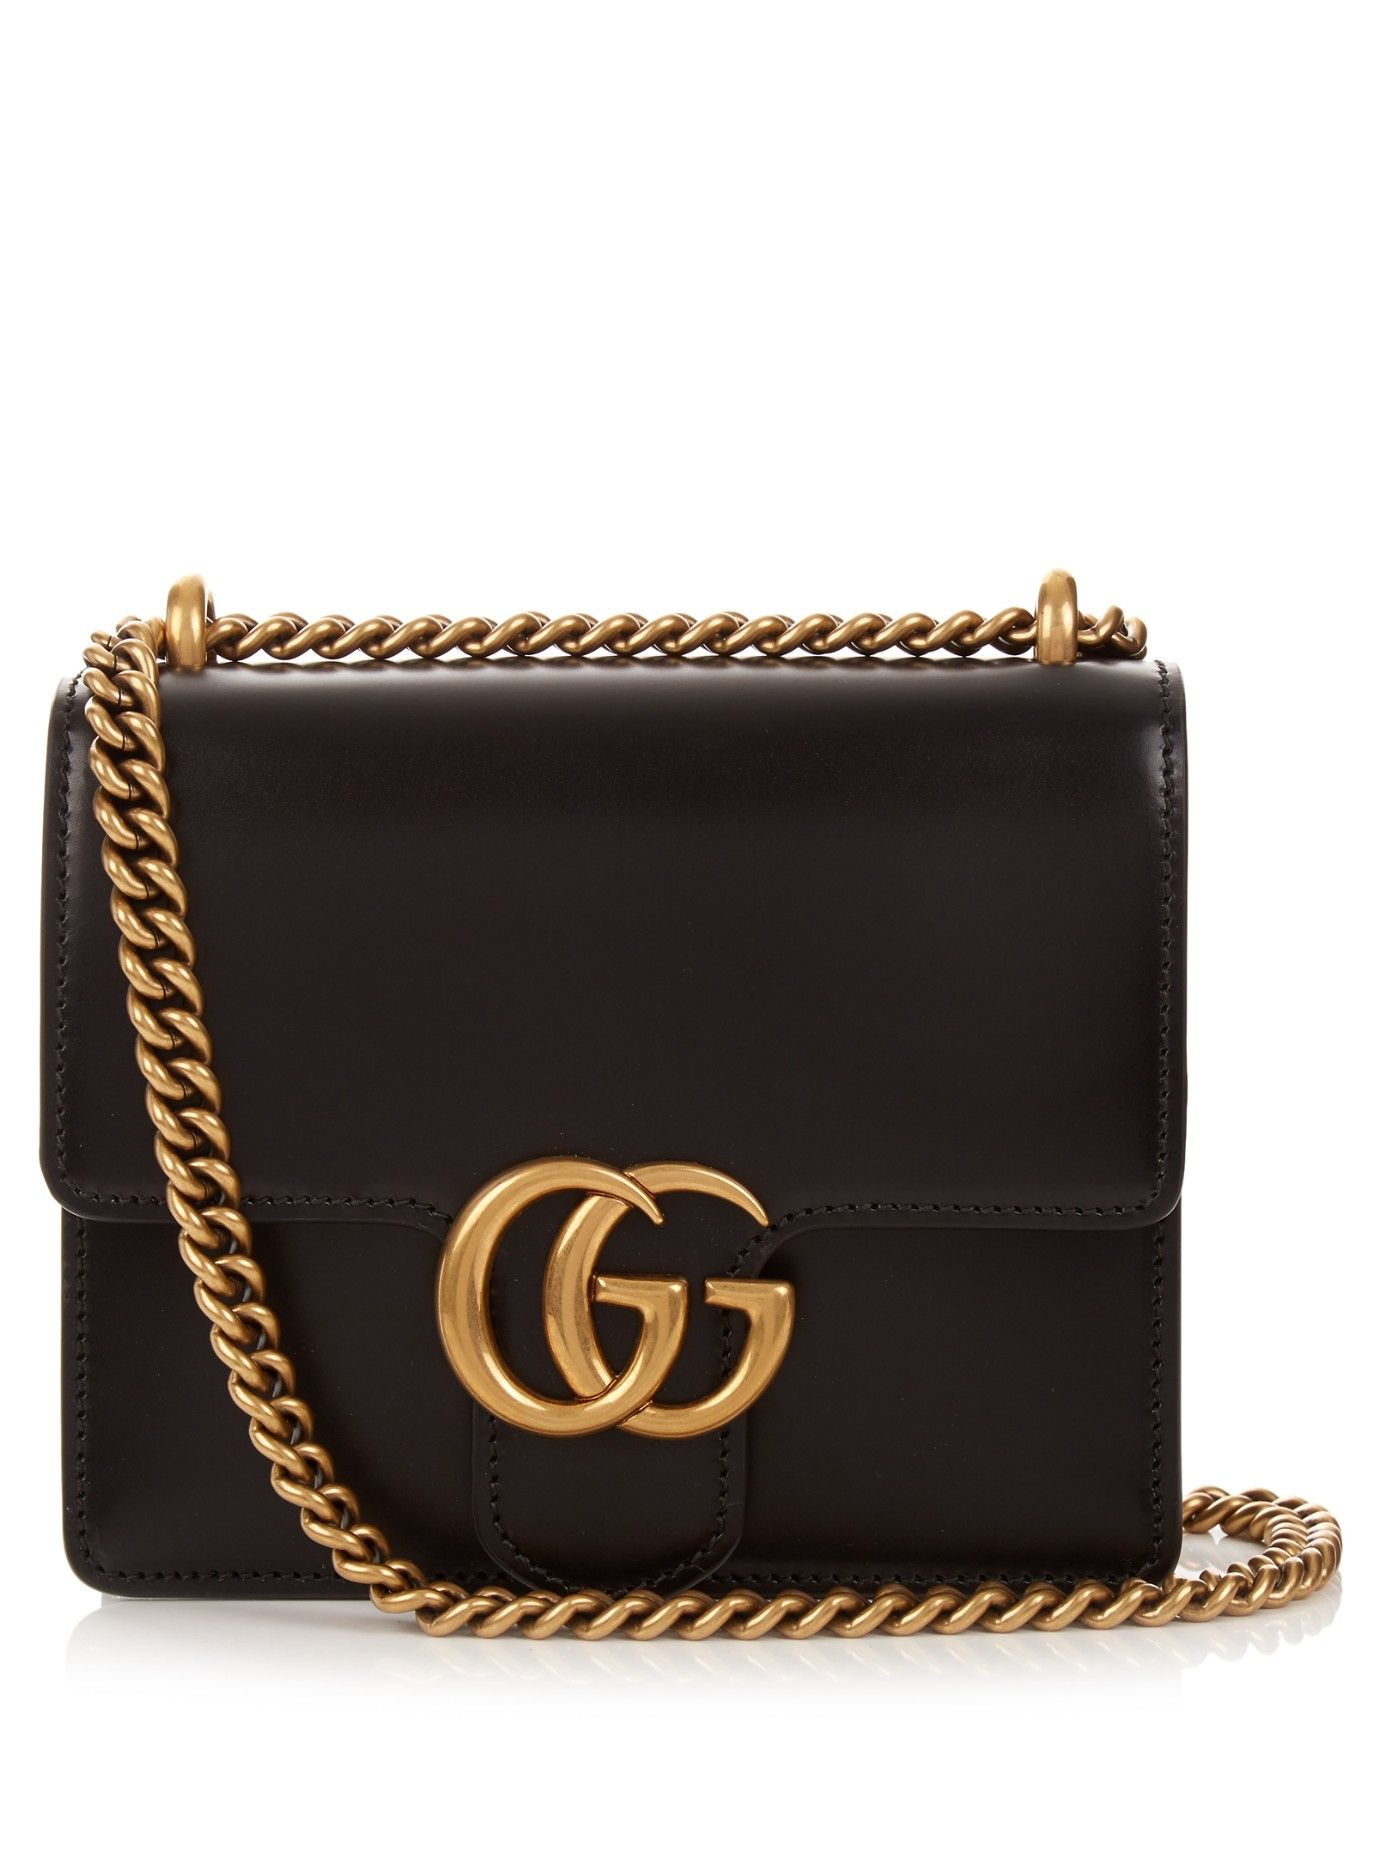 f171dd4574d Gucci s black smooth-leather GG Marmont bag subtly plays to the 1970s feel  of the label s new collection.